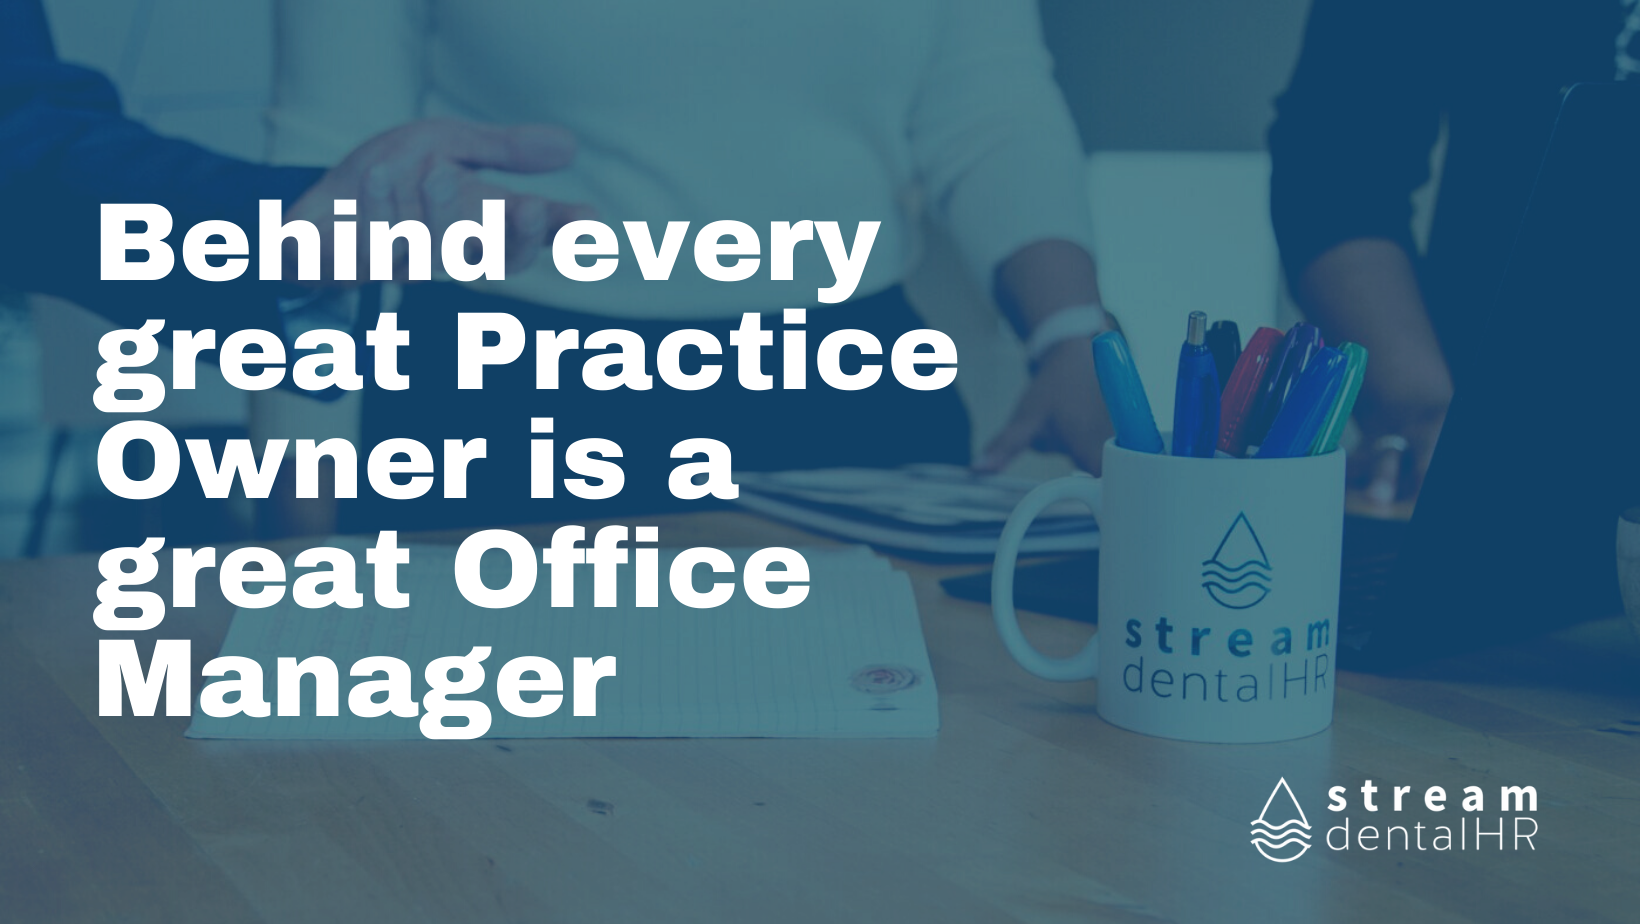 Behind every great Practice Owner is a great Office Manager